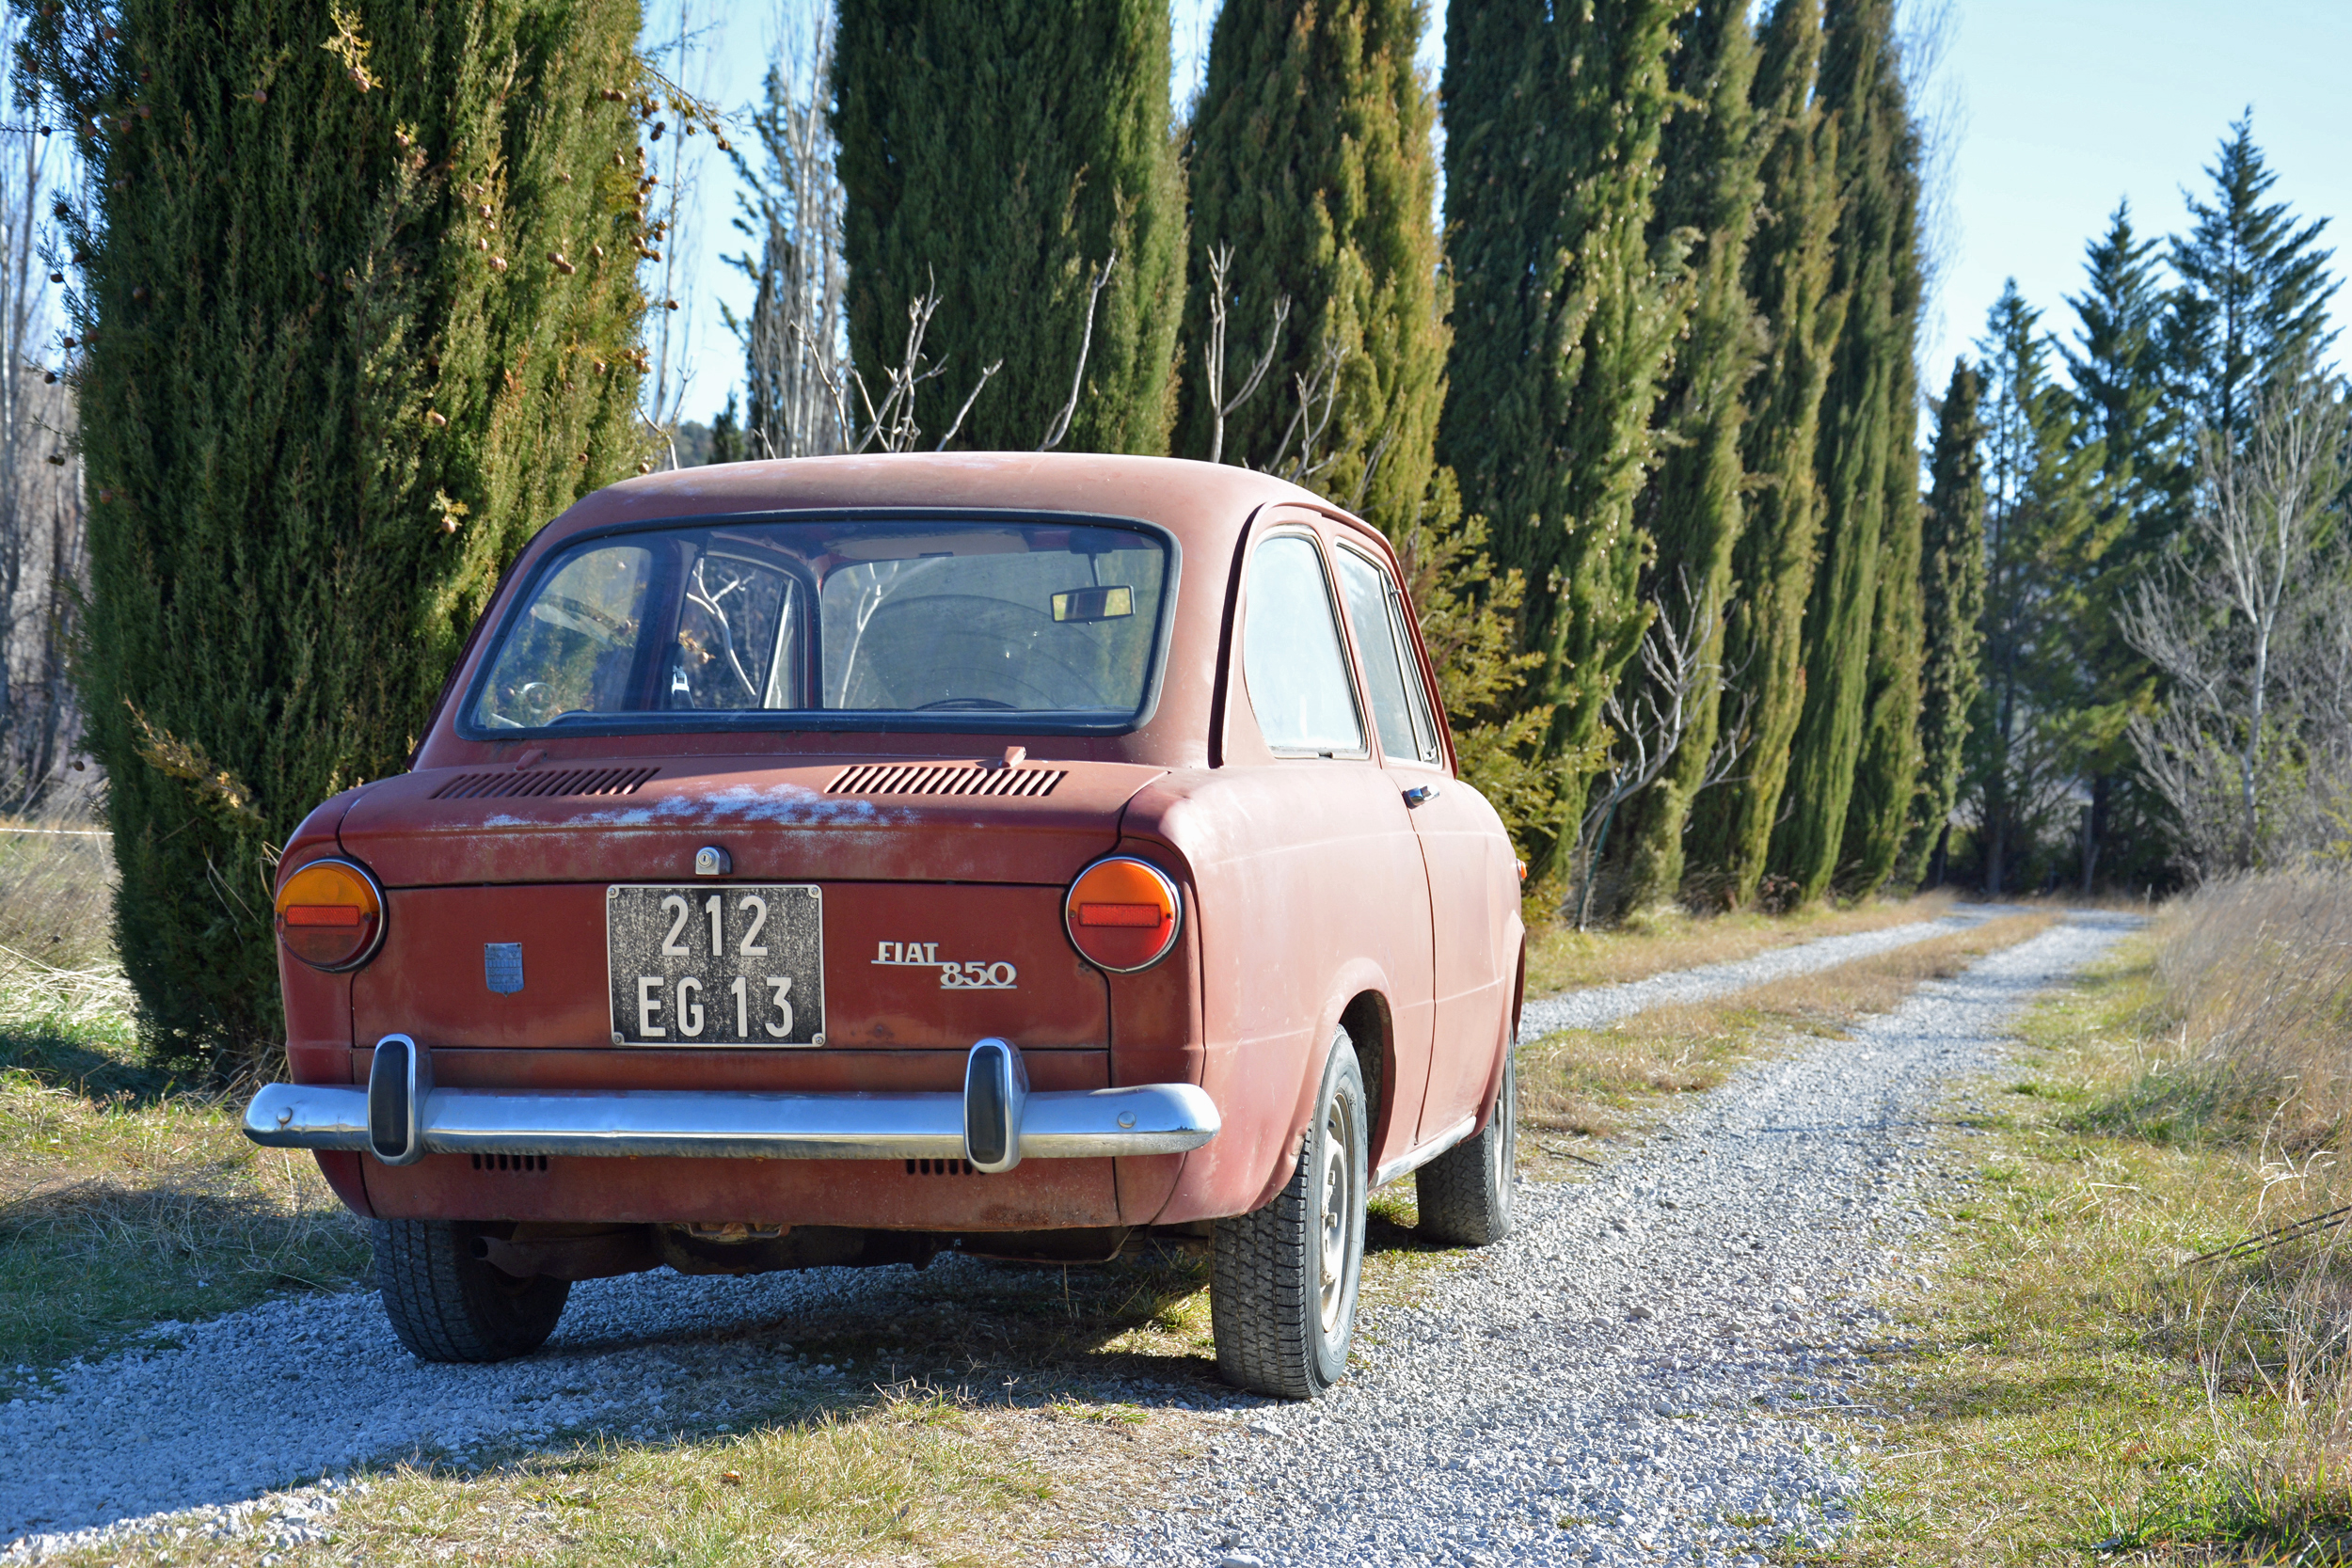 1971 Fiat 850 Rear Three-Quarter